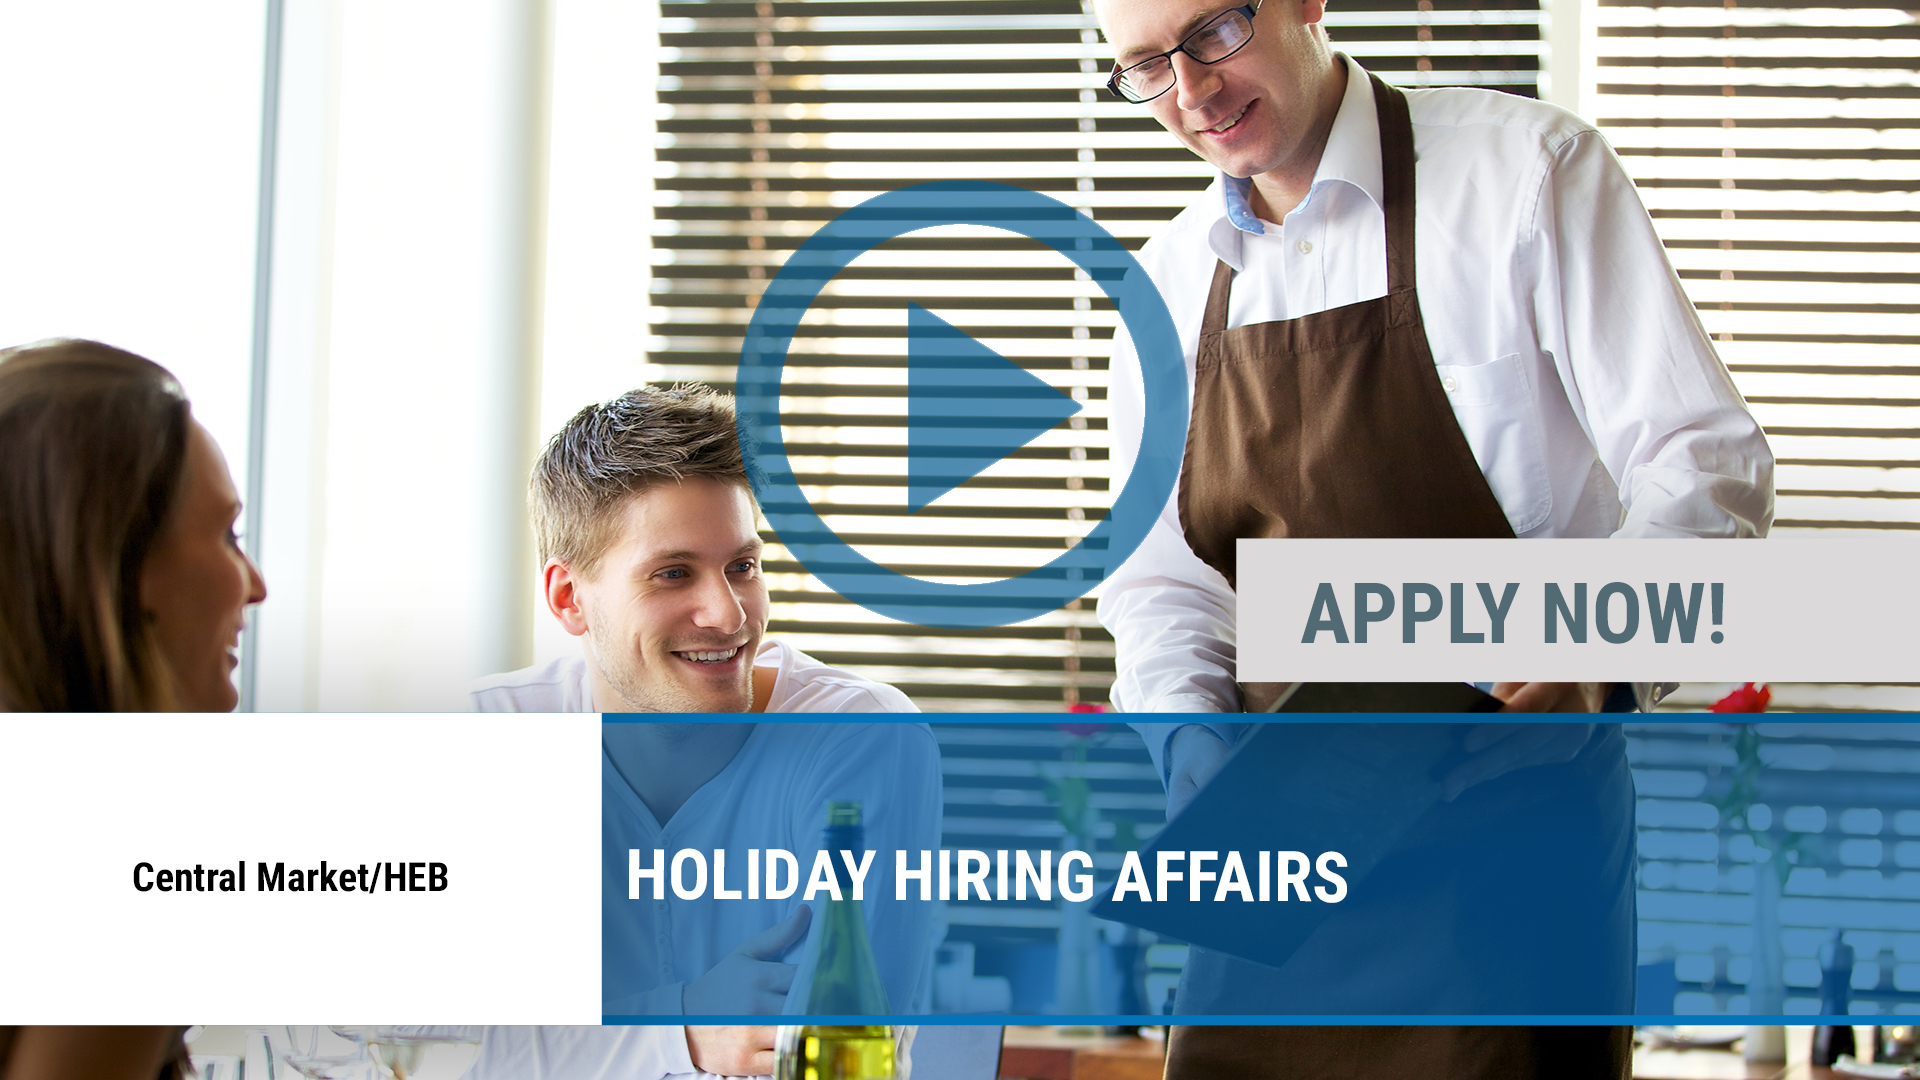 Watch our careers video for available job opening HOLIDAY HIRING AFFAIRS in Dallas, TX